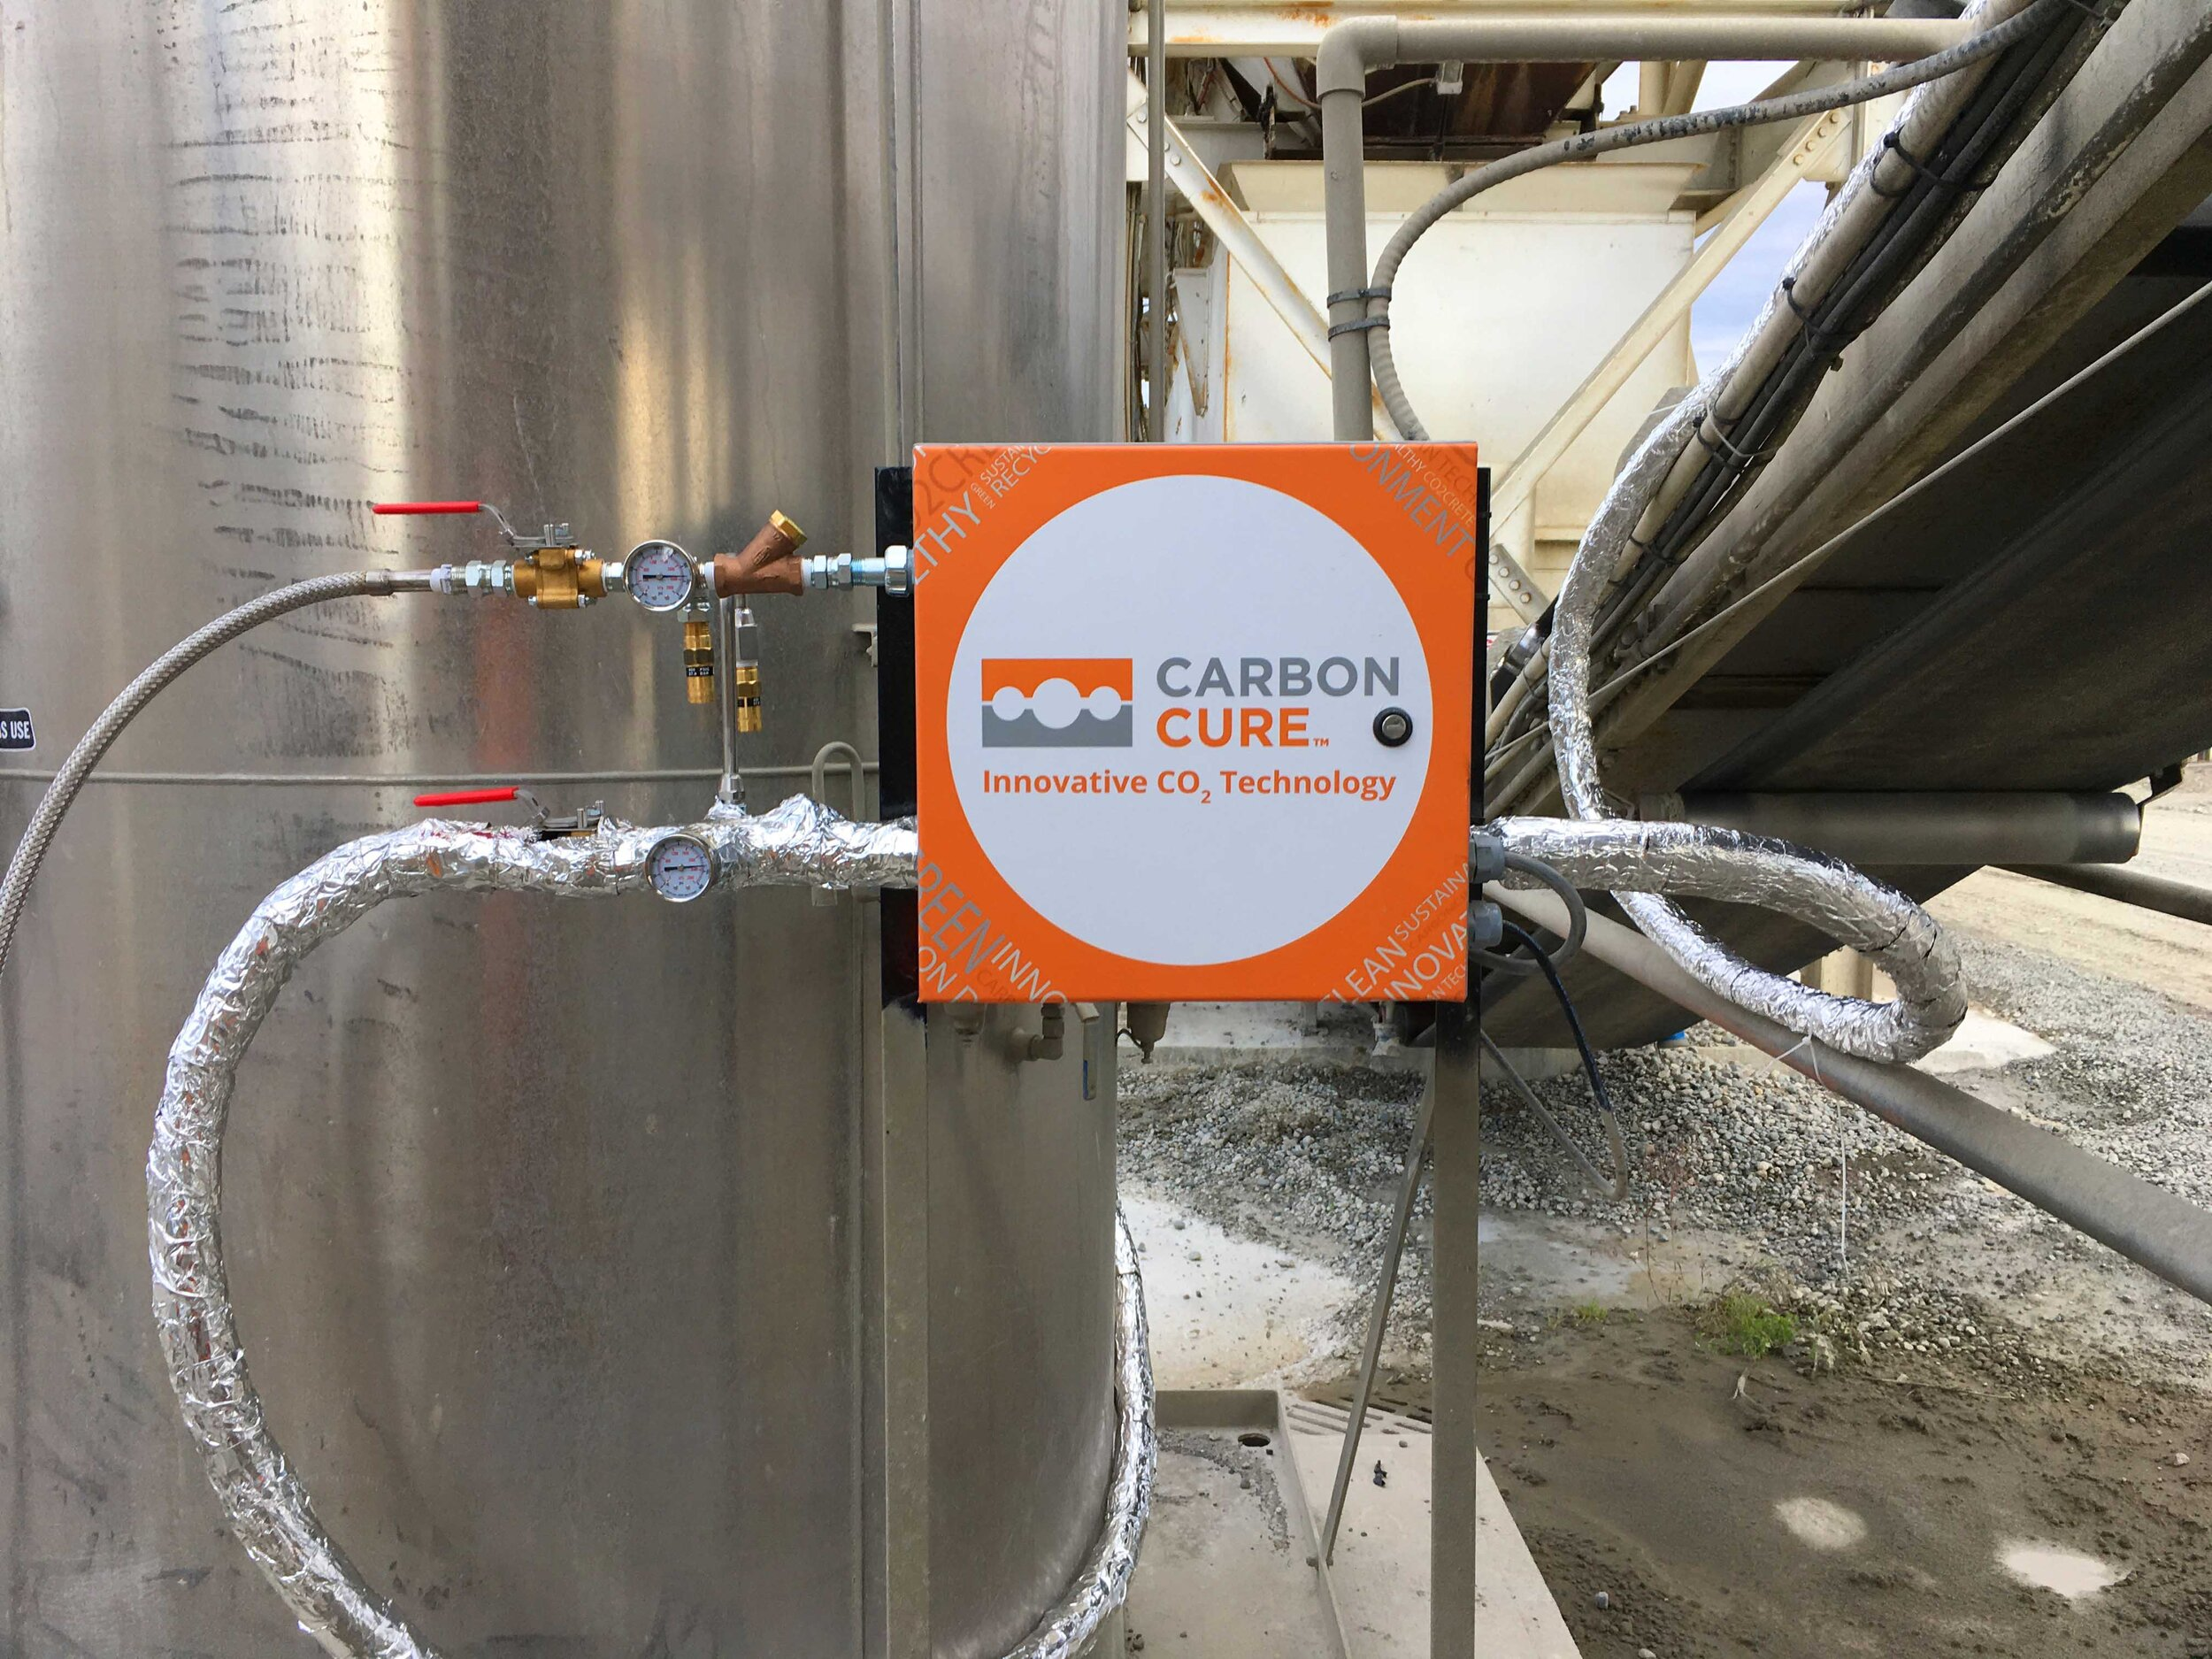 The CarbonCure valve box hooked up to the CO2 tank on one side and the injection nozzle on the other via insulated transfer hoses. The valve box is also connected to the control box by a control cable.